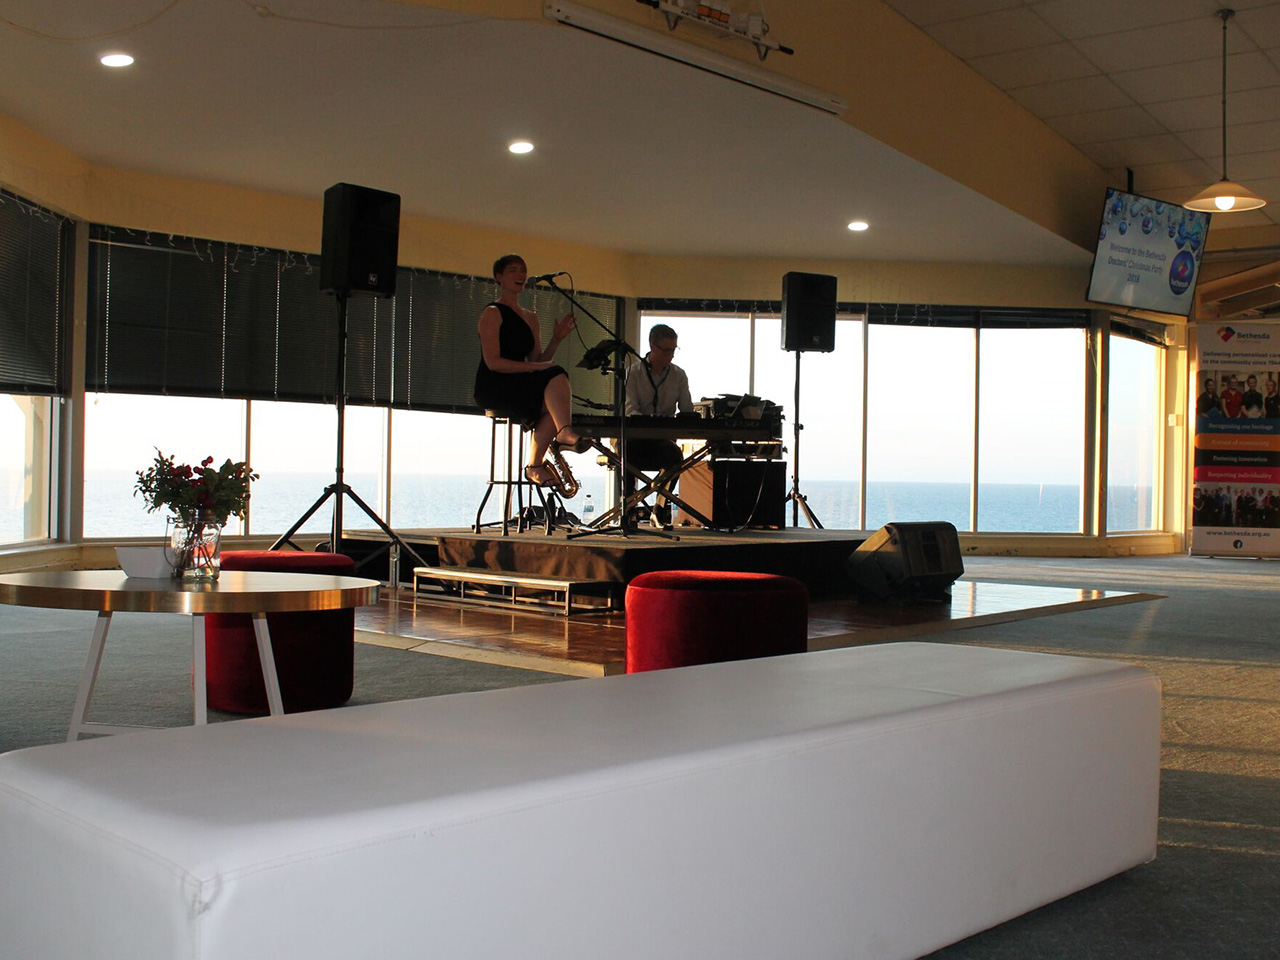 A Band Rehearsing On Stage Inside The Bare Function Room